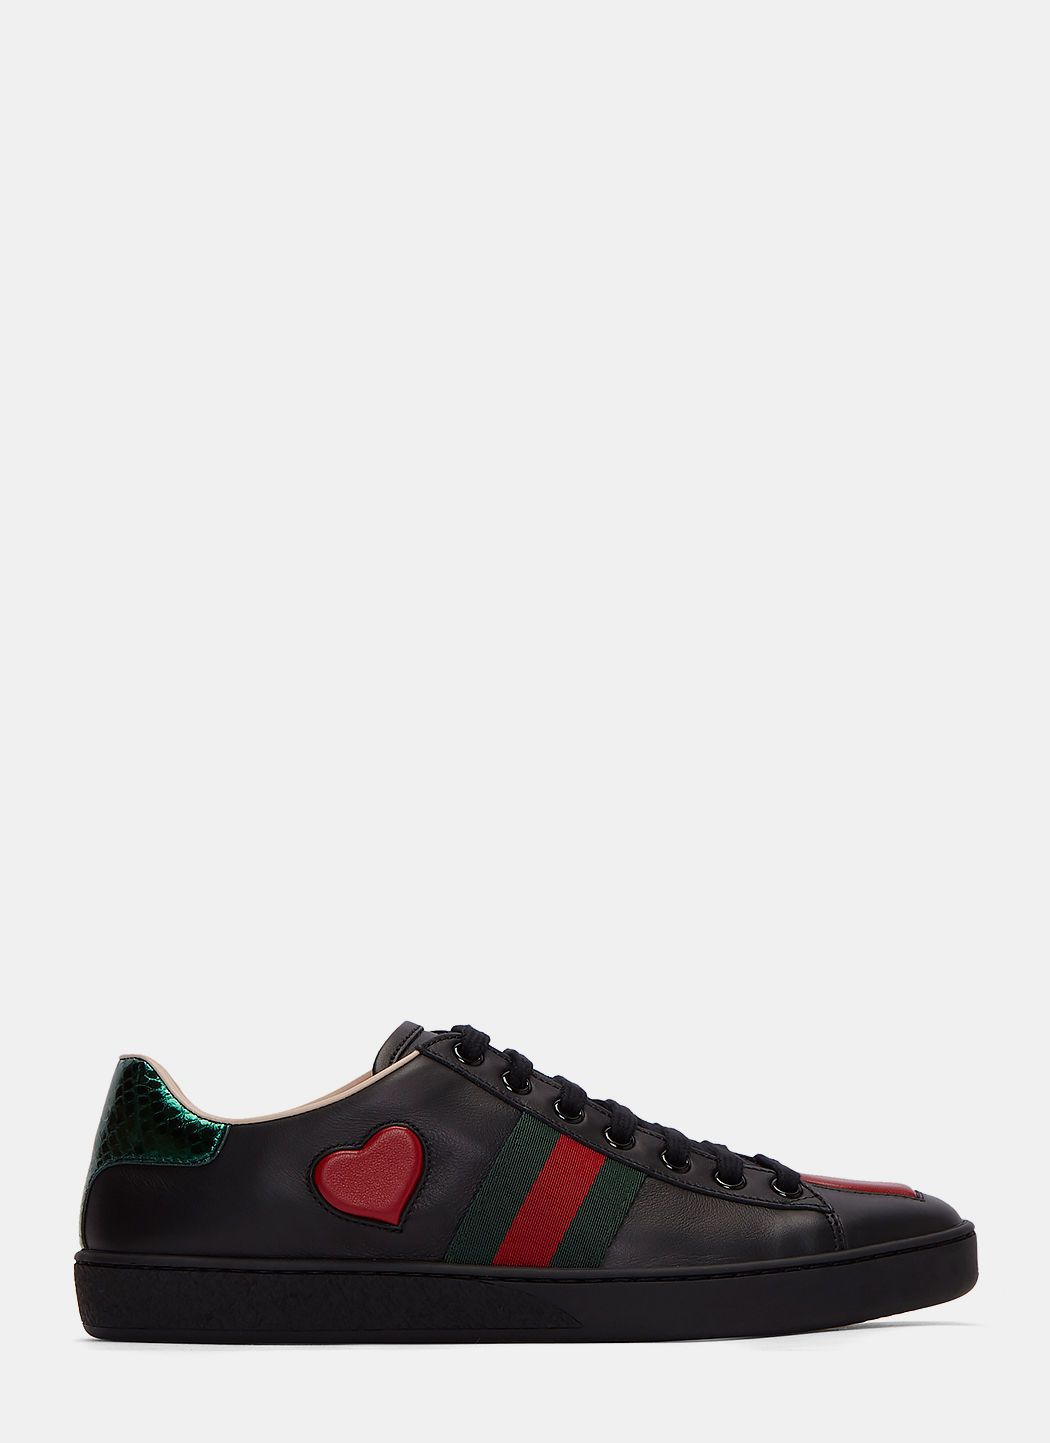 GUCCI Women'S Heart Cushioned Low-Top Sneakers In Black. #gucci #shoes #